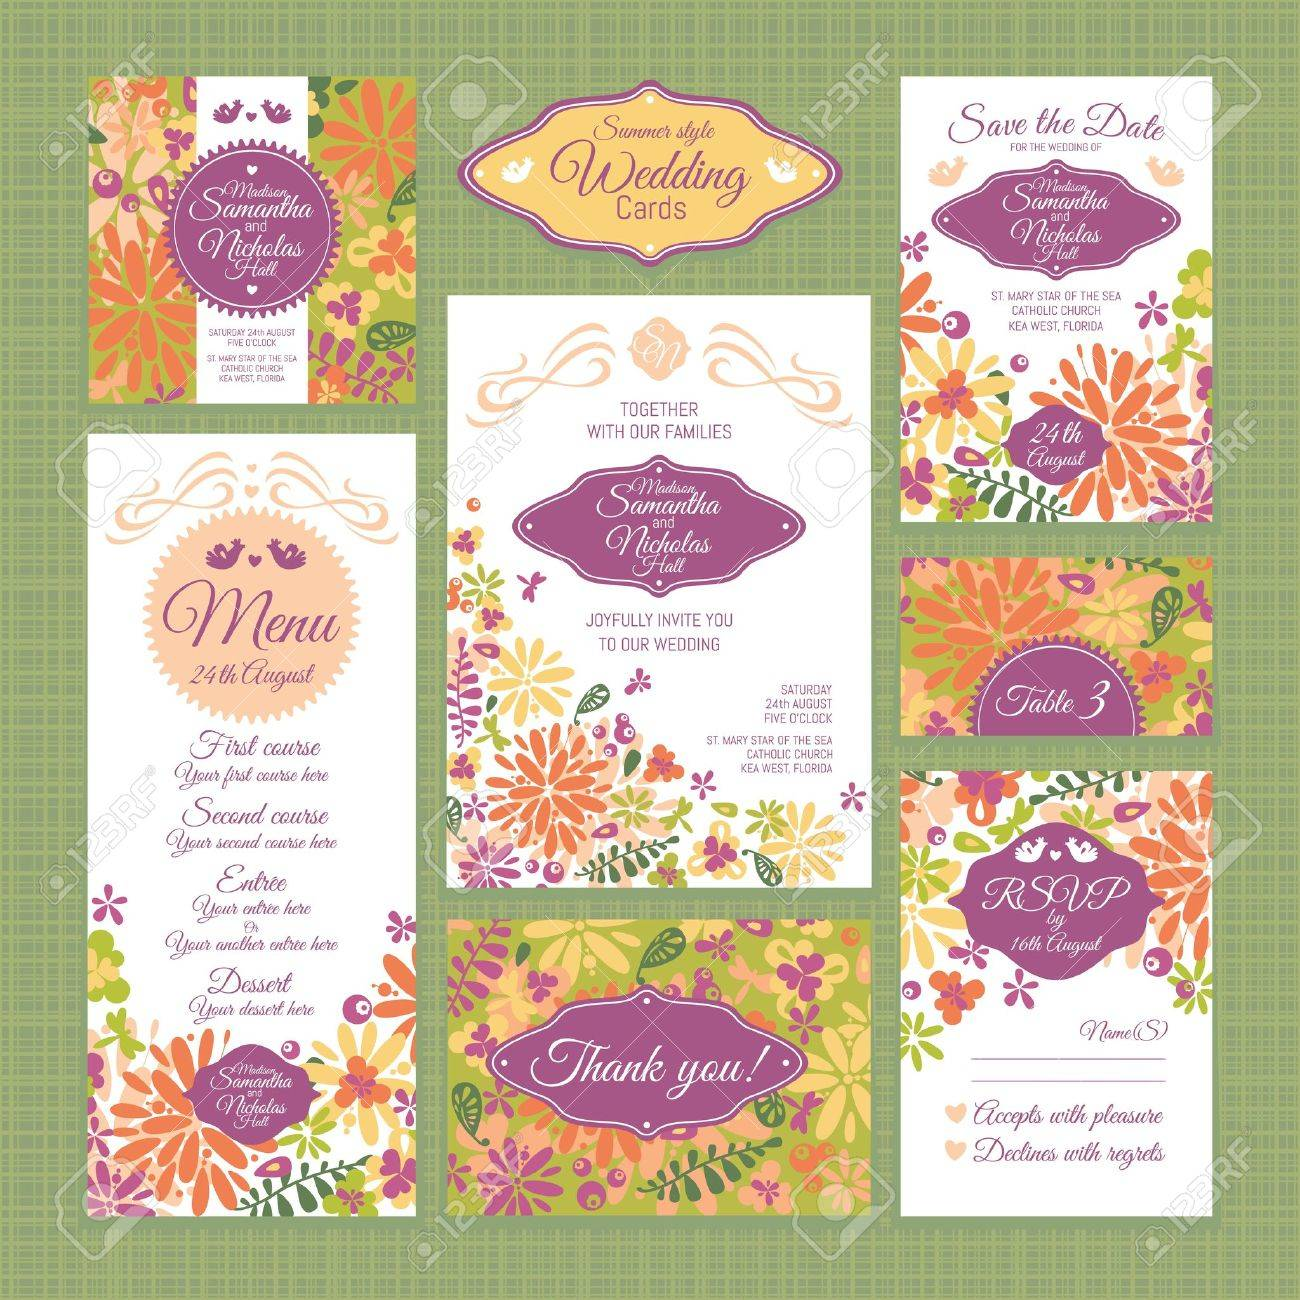 set of wedding cards wedding invitations thank you card save